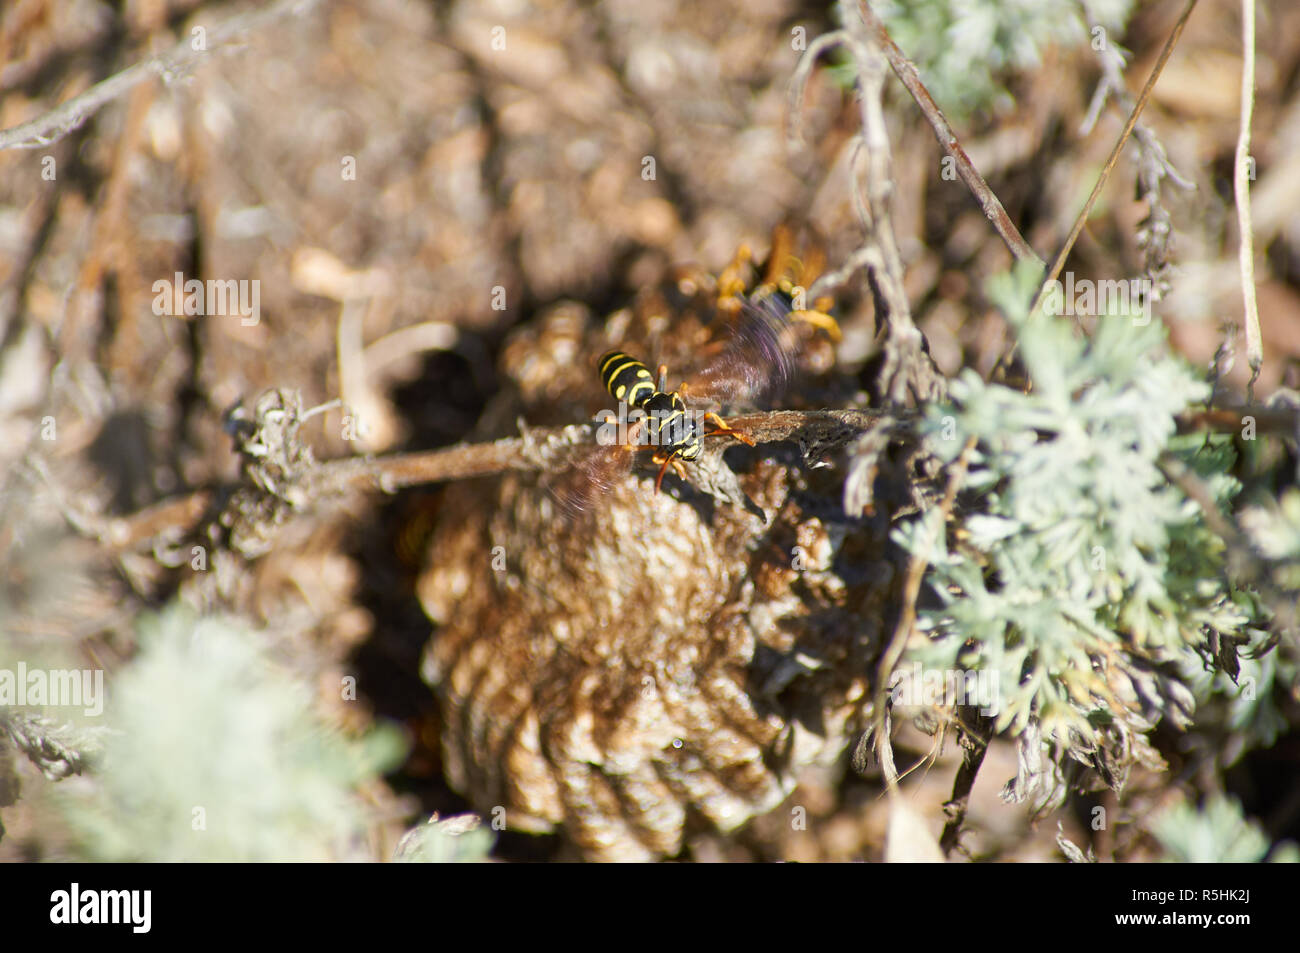 Common wasp (vespula vulgaris) in the heat cools its nest with the help of wings. - Stock Image